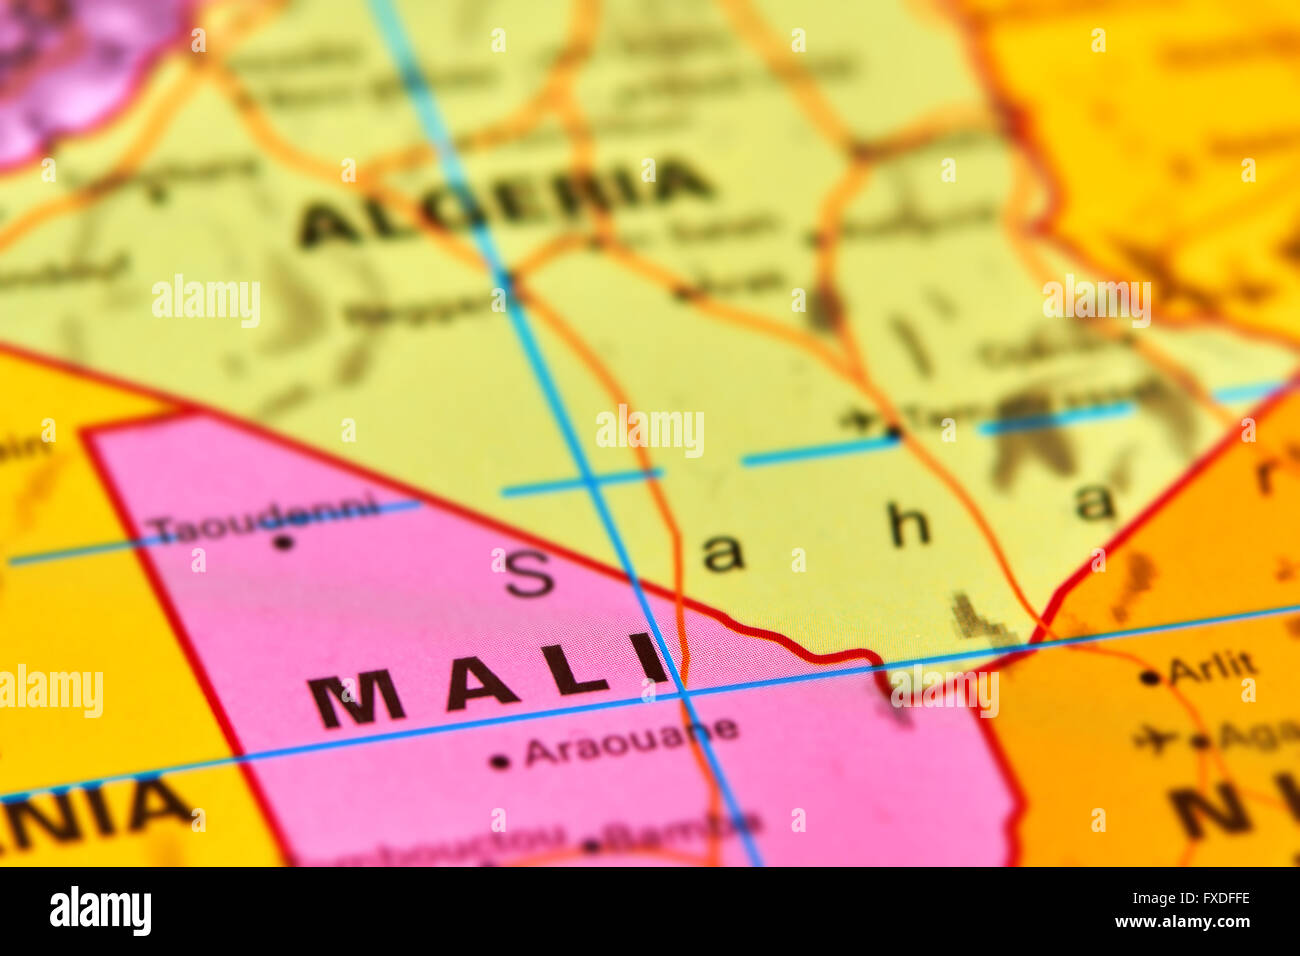 Mali Map Of Africa Stock Photos & Mali Map Of Africa Stock Images ...